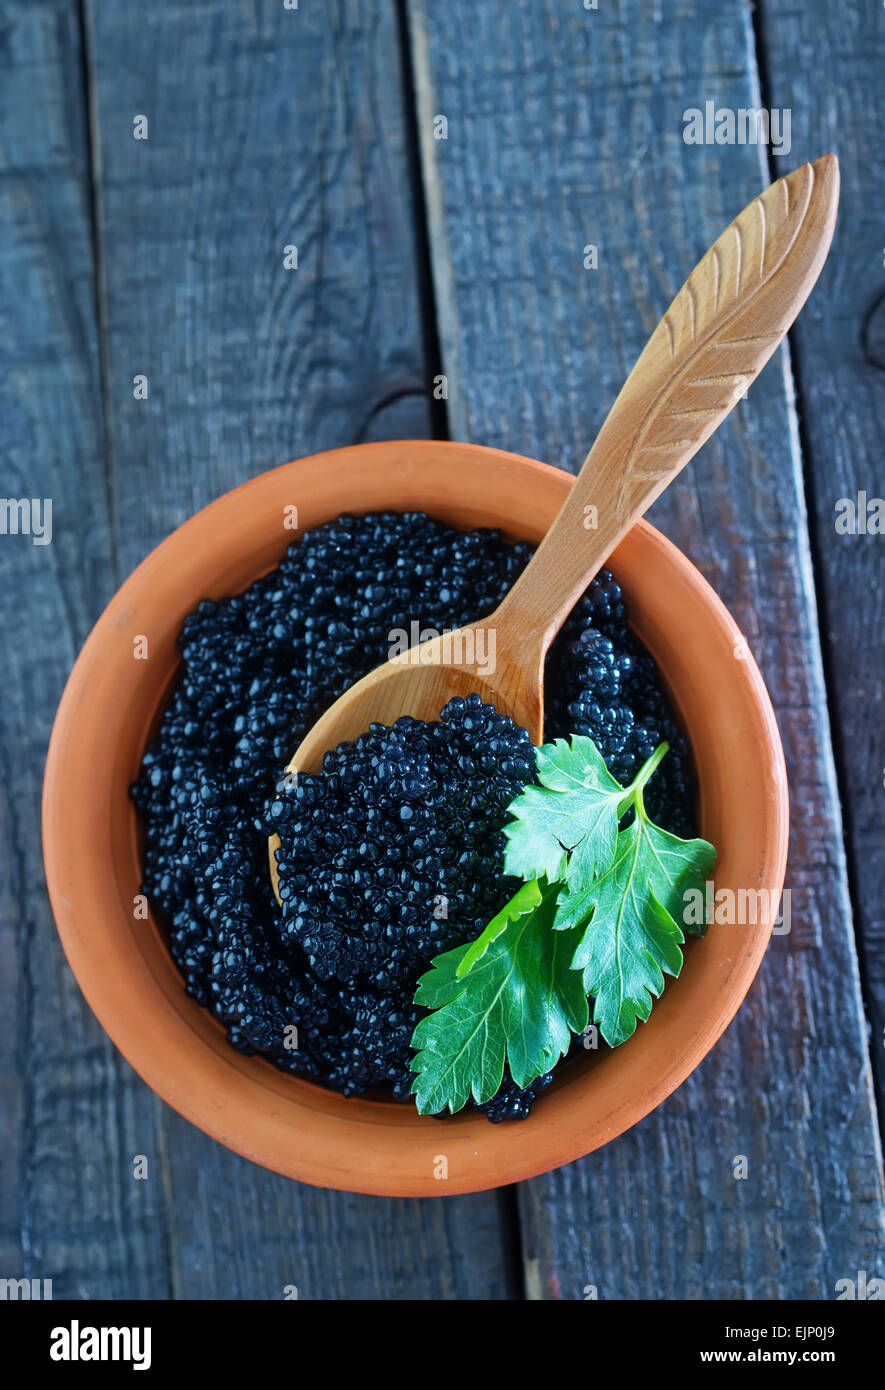 black caviar in bowl and on a table - Stock Image